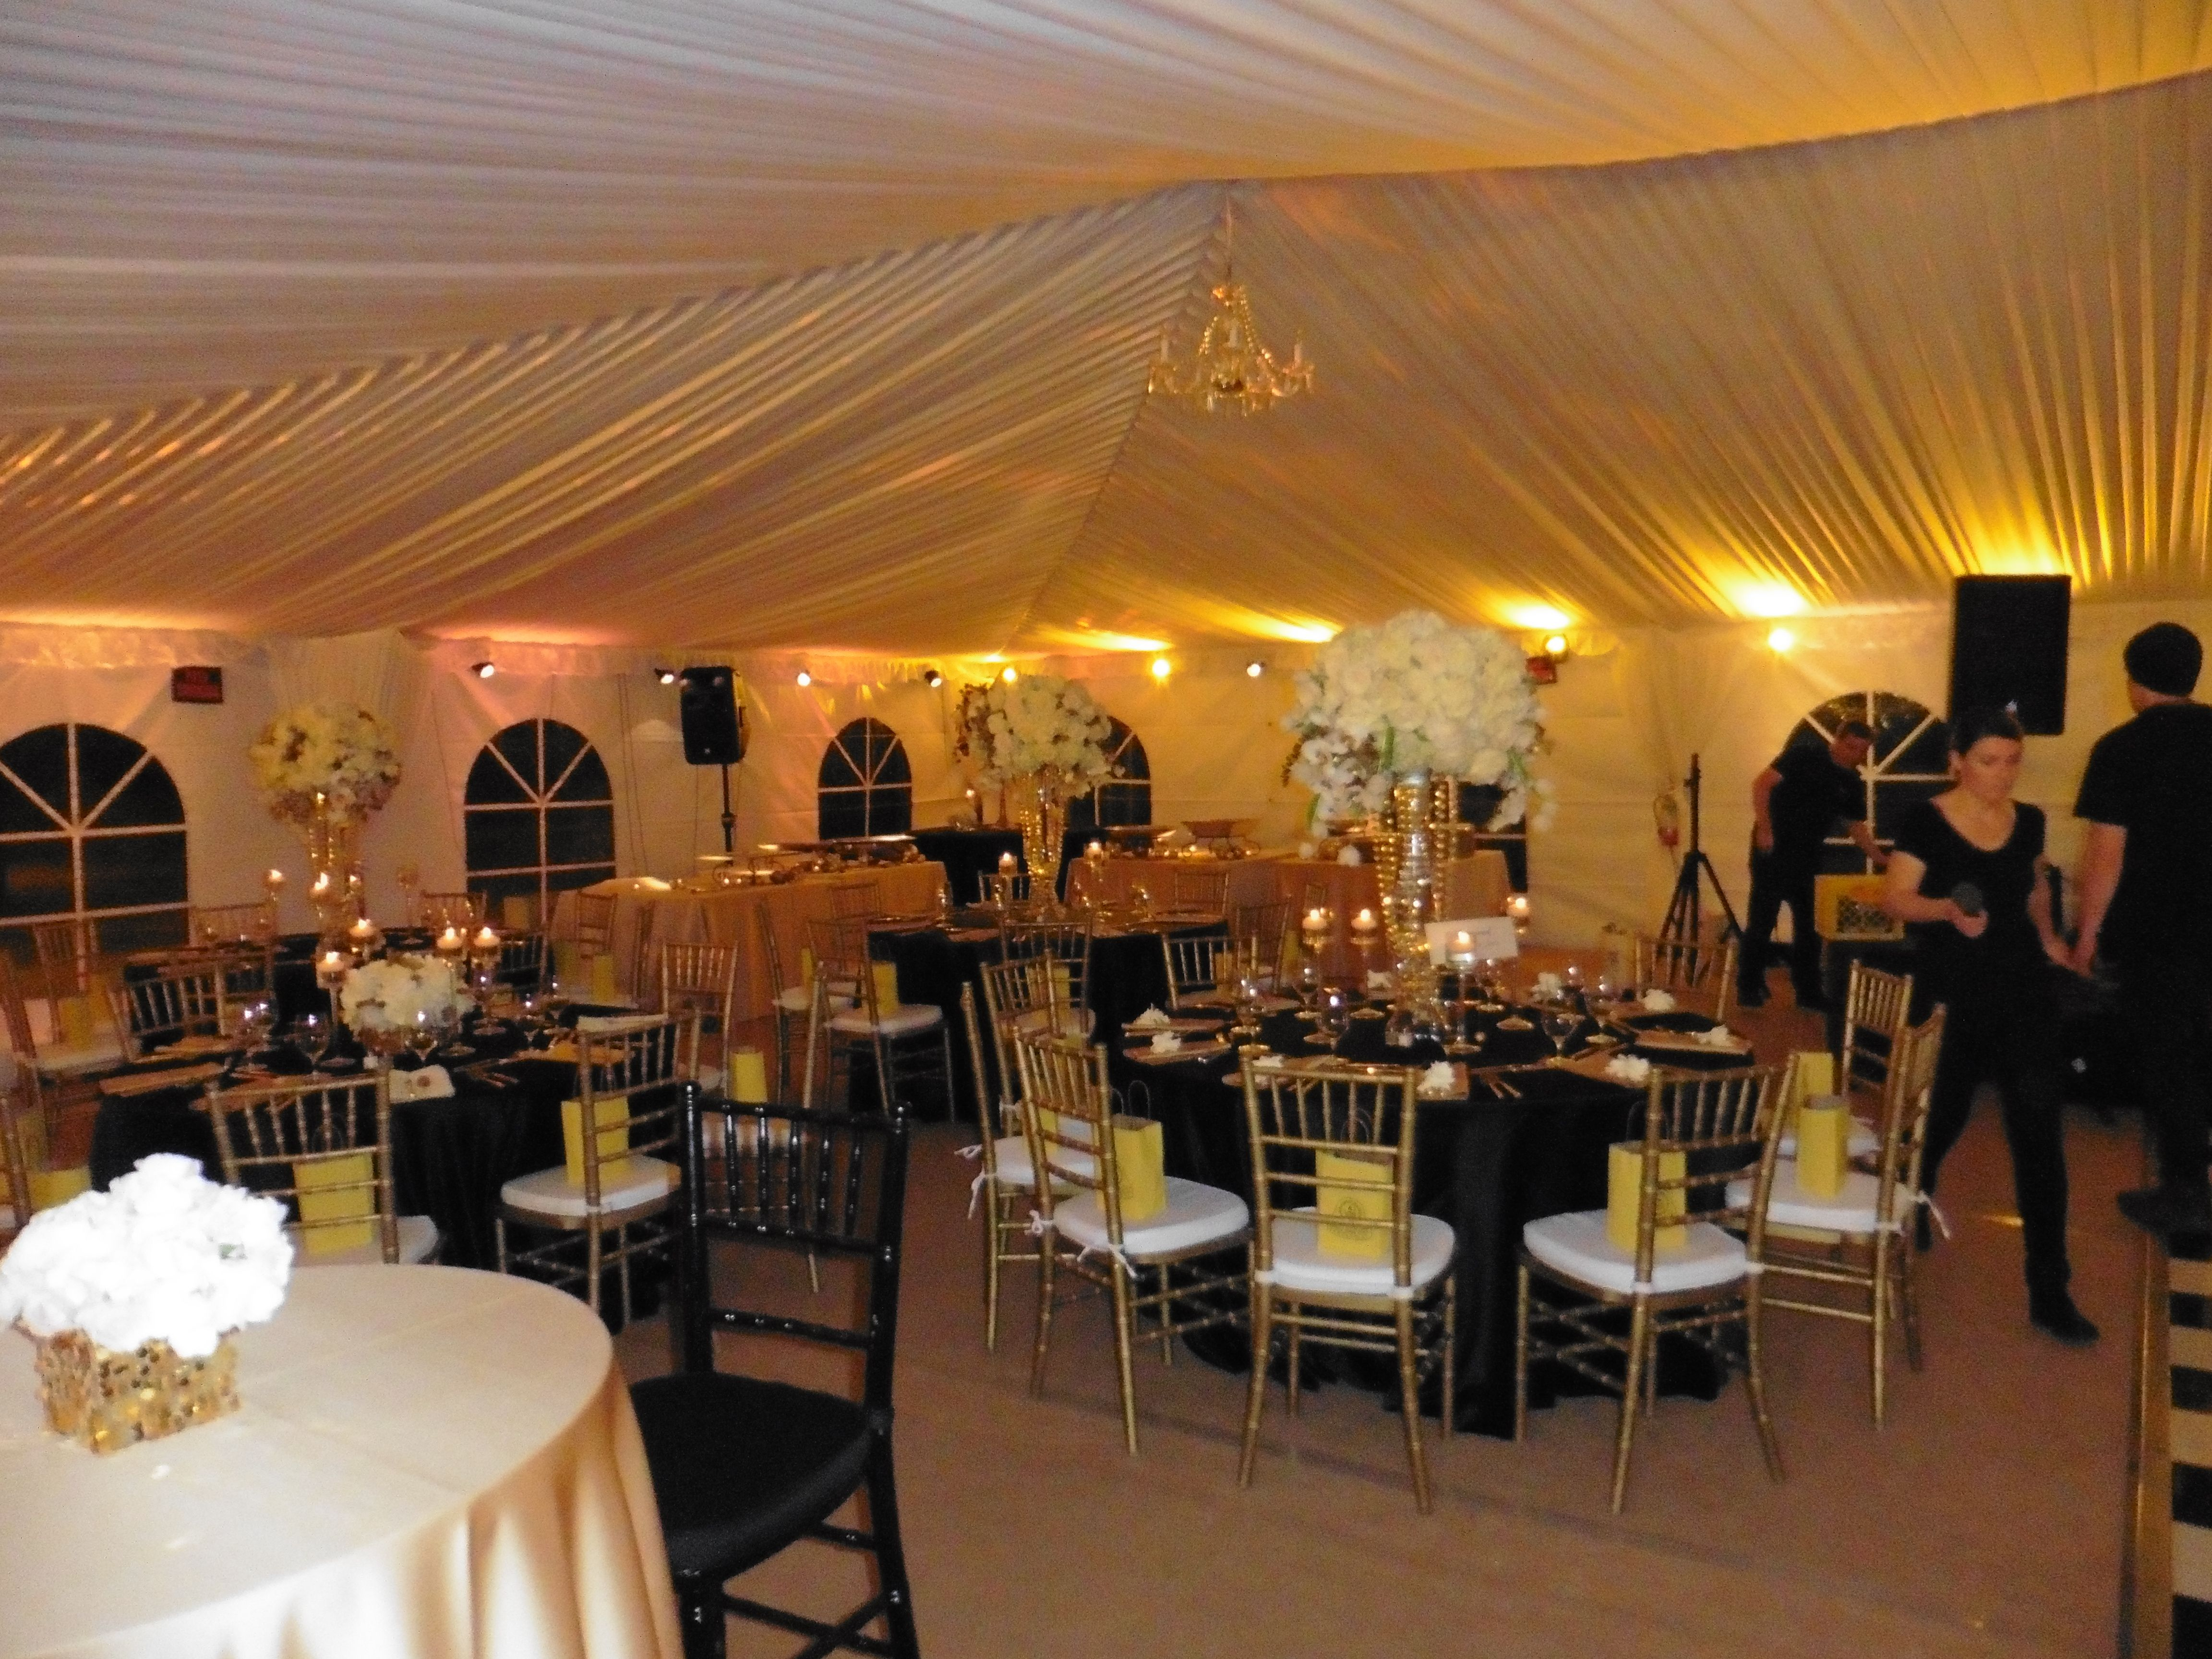 Guest tables in black satin. Swagged tent ceiling. Chandelier.